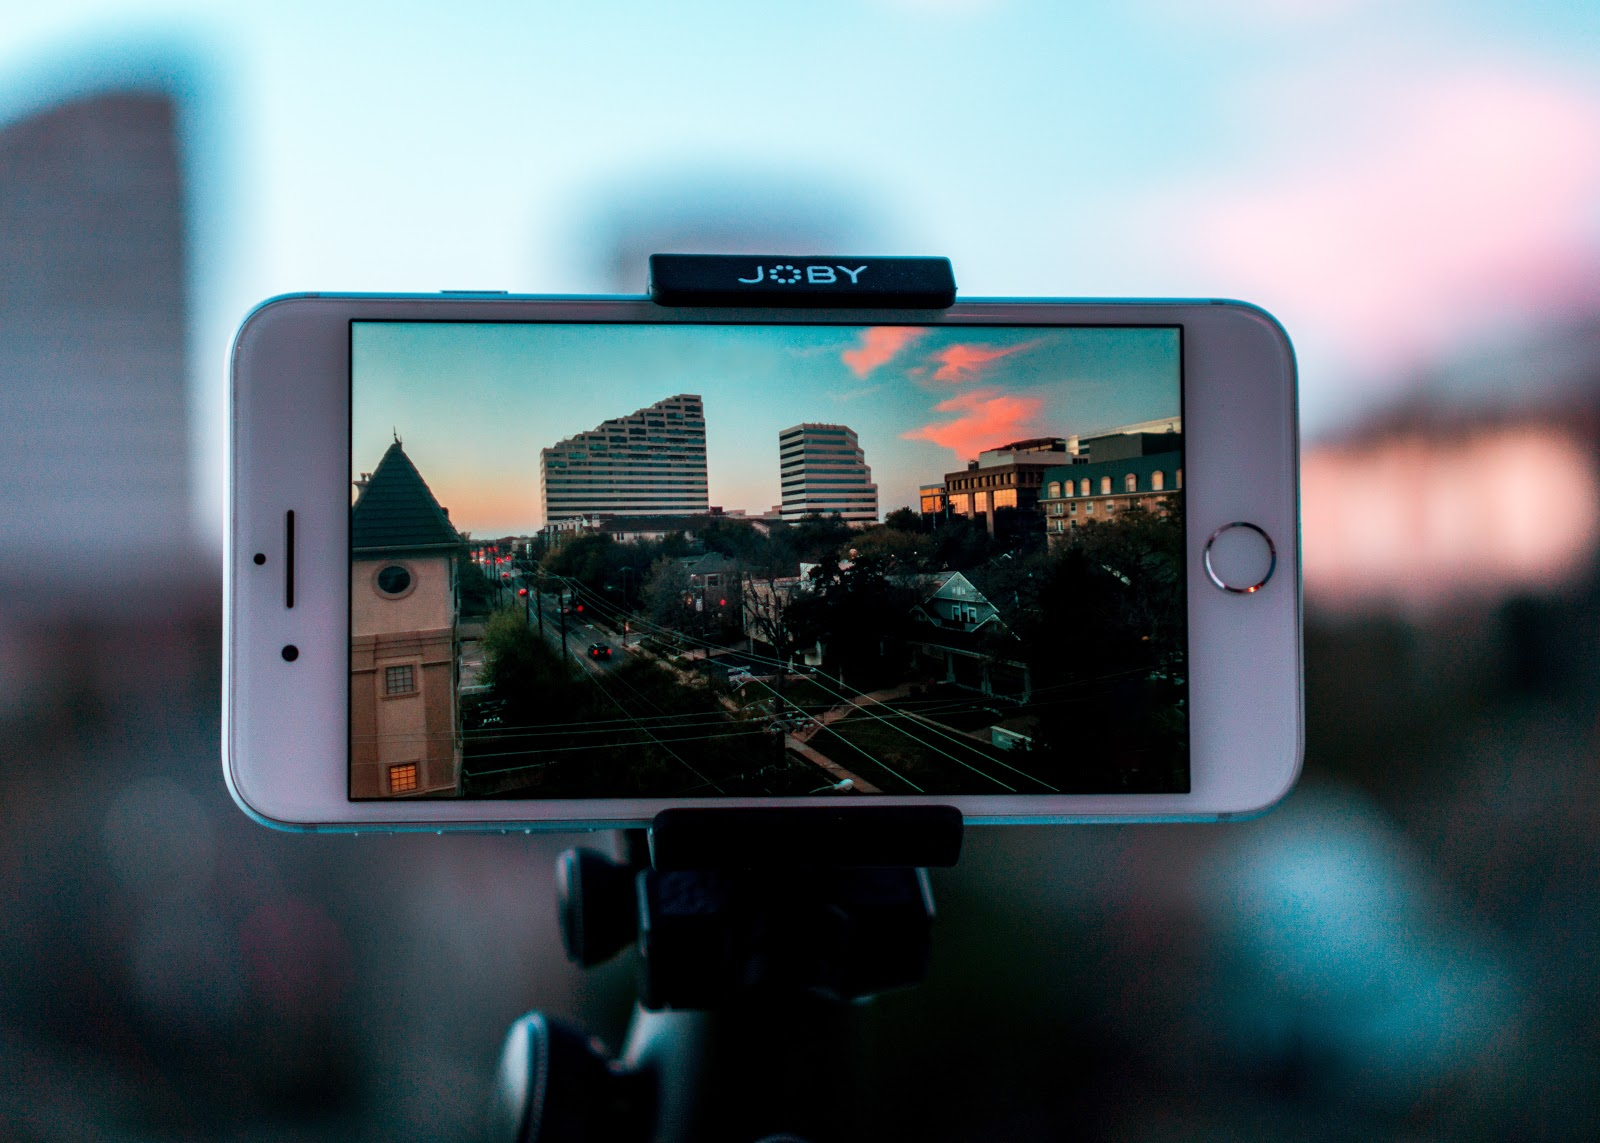 iPhone taking a picture of Dallas, Texas.